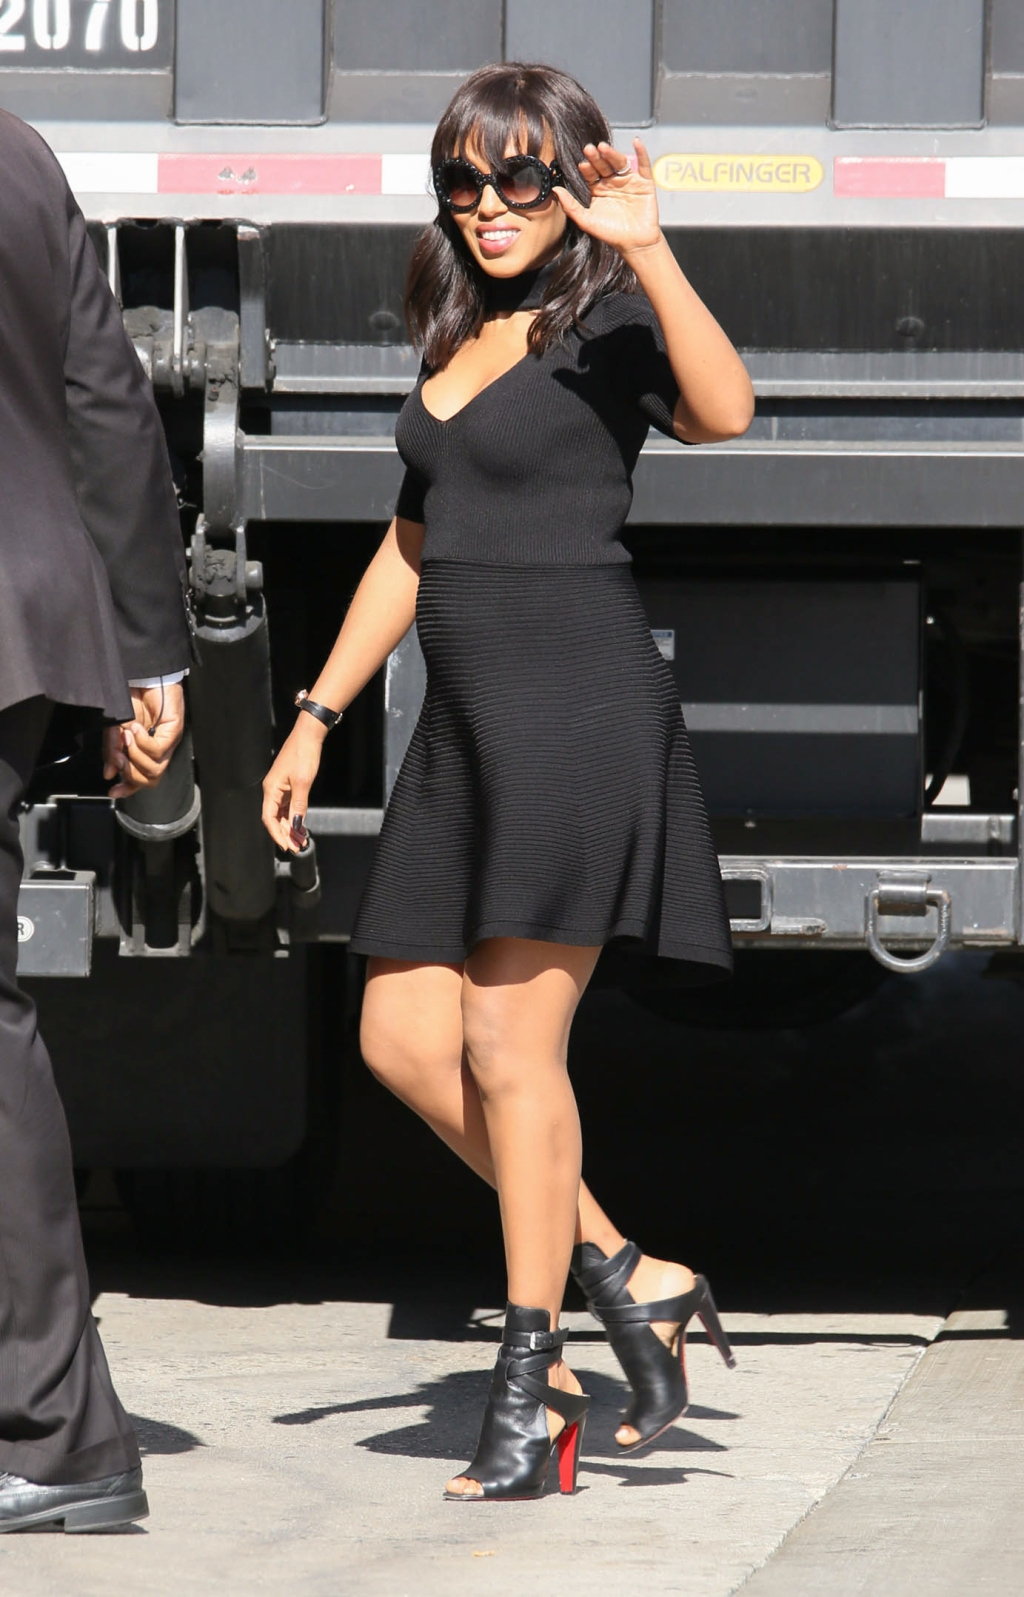 """05/12/2016 - Kerry Washington - Kerry Washington Sighted Arriving at """"Jimmy Kimmel Live!"""" on May 12, 2016 - """"Jimmy Kimmel Live!"""" Studio - Los Angeles, CA, USA - Keywords: Black open toe high heel shoes, Black Christian Louboutin high heel shoes, Full Length Shot, vertical, Watch, ring, rings, jewelry, Black Dress, Baby Bump, Pregnant, second pregnancy, Sunglasses, Shoulder Length Wavy Black Hair, American actress, """"Scandal"""", Olivia Pope, Arts Culture and Entertainment, Walking, Television Show Arrival, Arriving, Photography, Candid, Arts Culture and Entertainment, Person, People, Celebrities, Celebrity Sightings, Topix, Bestof, California Orientation: Portrait Face Count: 1 - False - Photo Credit: jmx2 / PRPhotos.com - Contact (1-866-551-7827) - Portrait Face Count: 1"""